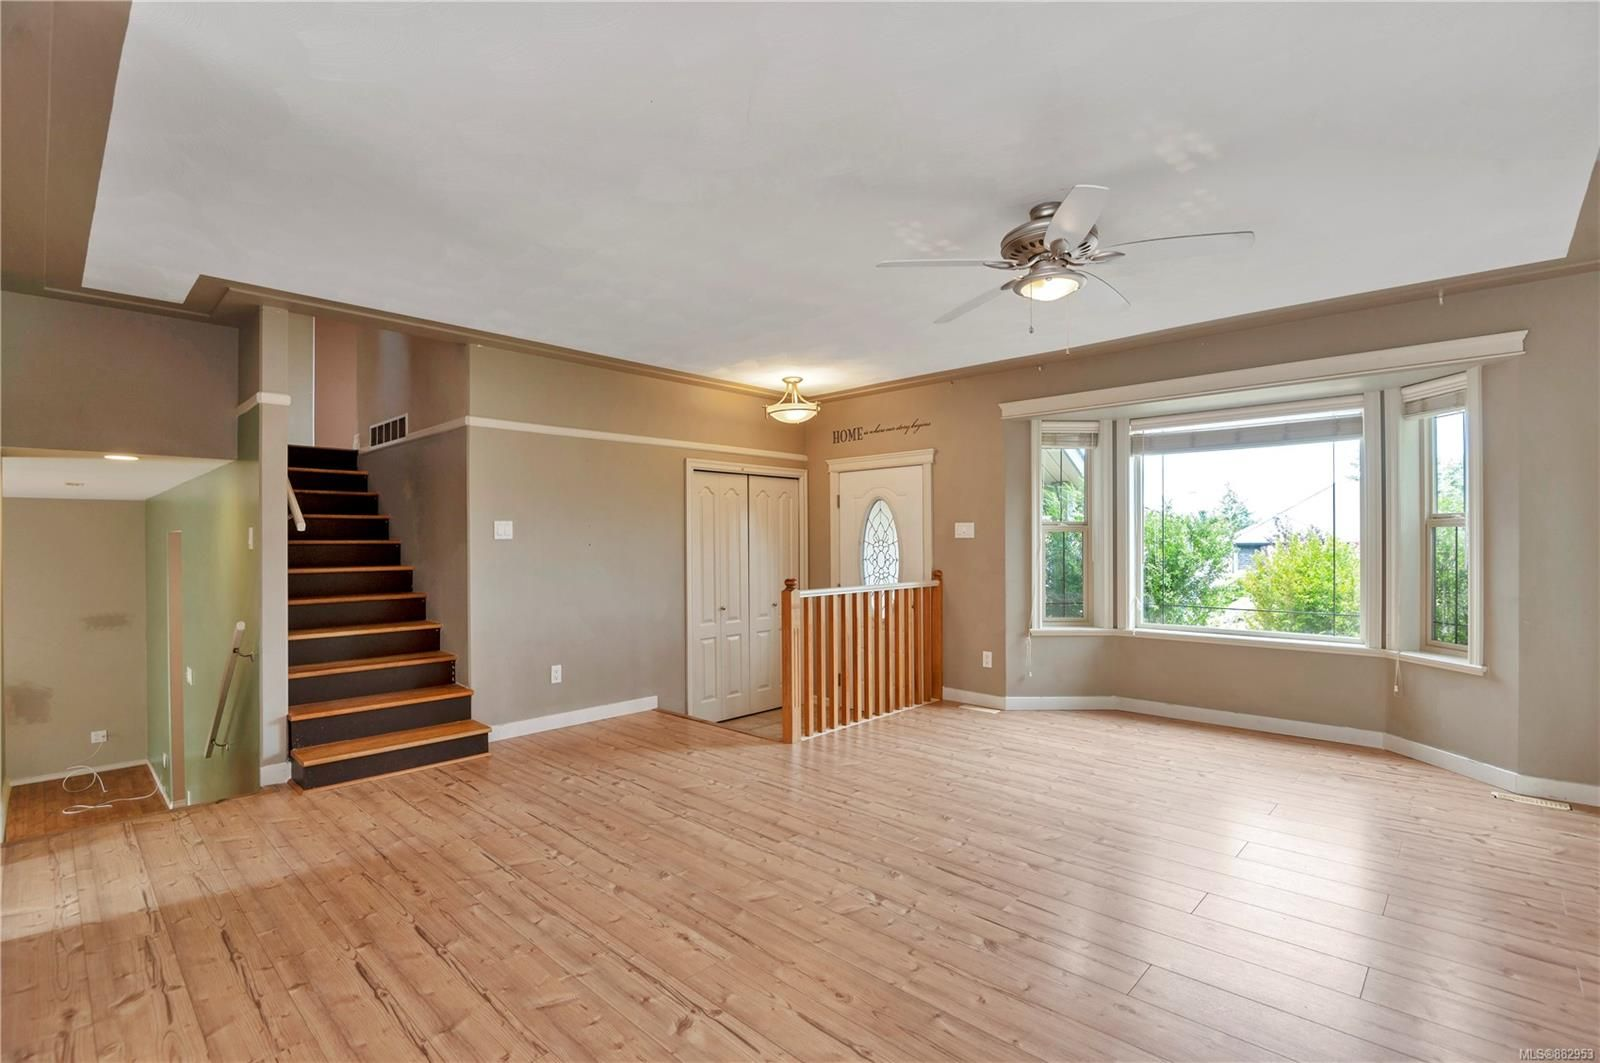 Photo 11: Photos: 732 Oribi Dr in : CR Campbell River Central House for sale (Campbell River)  : MLS®# 882953